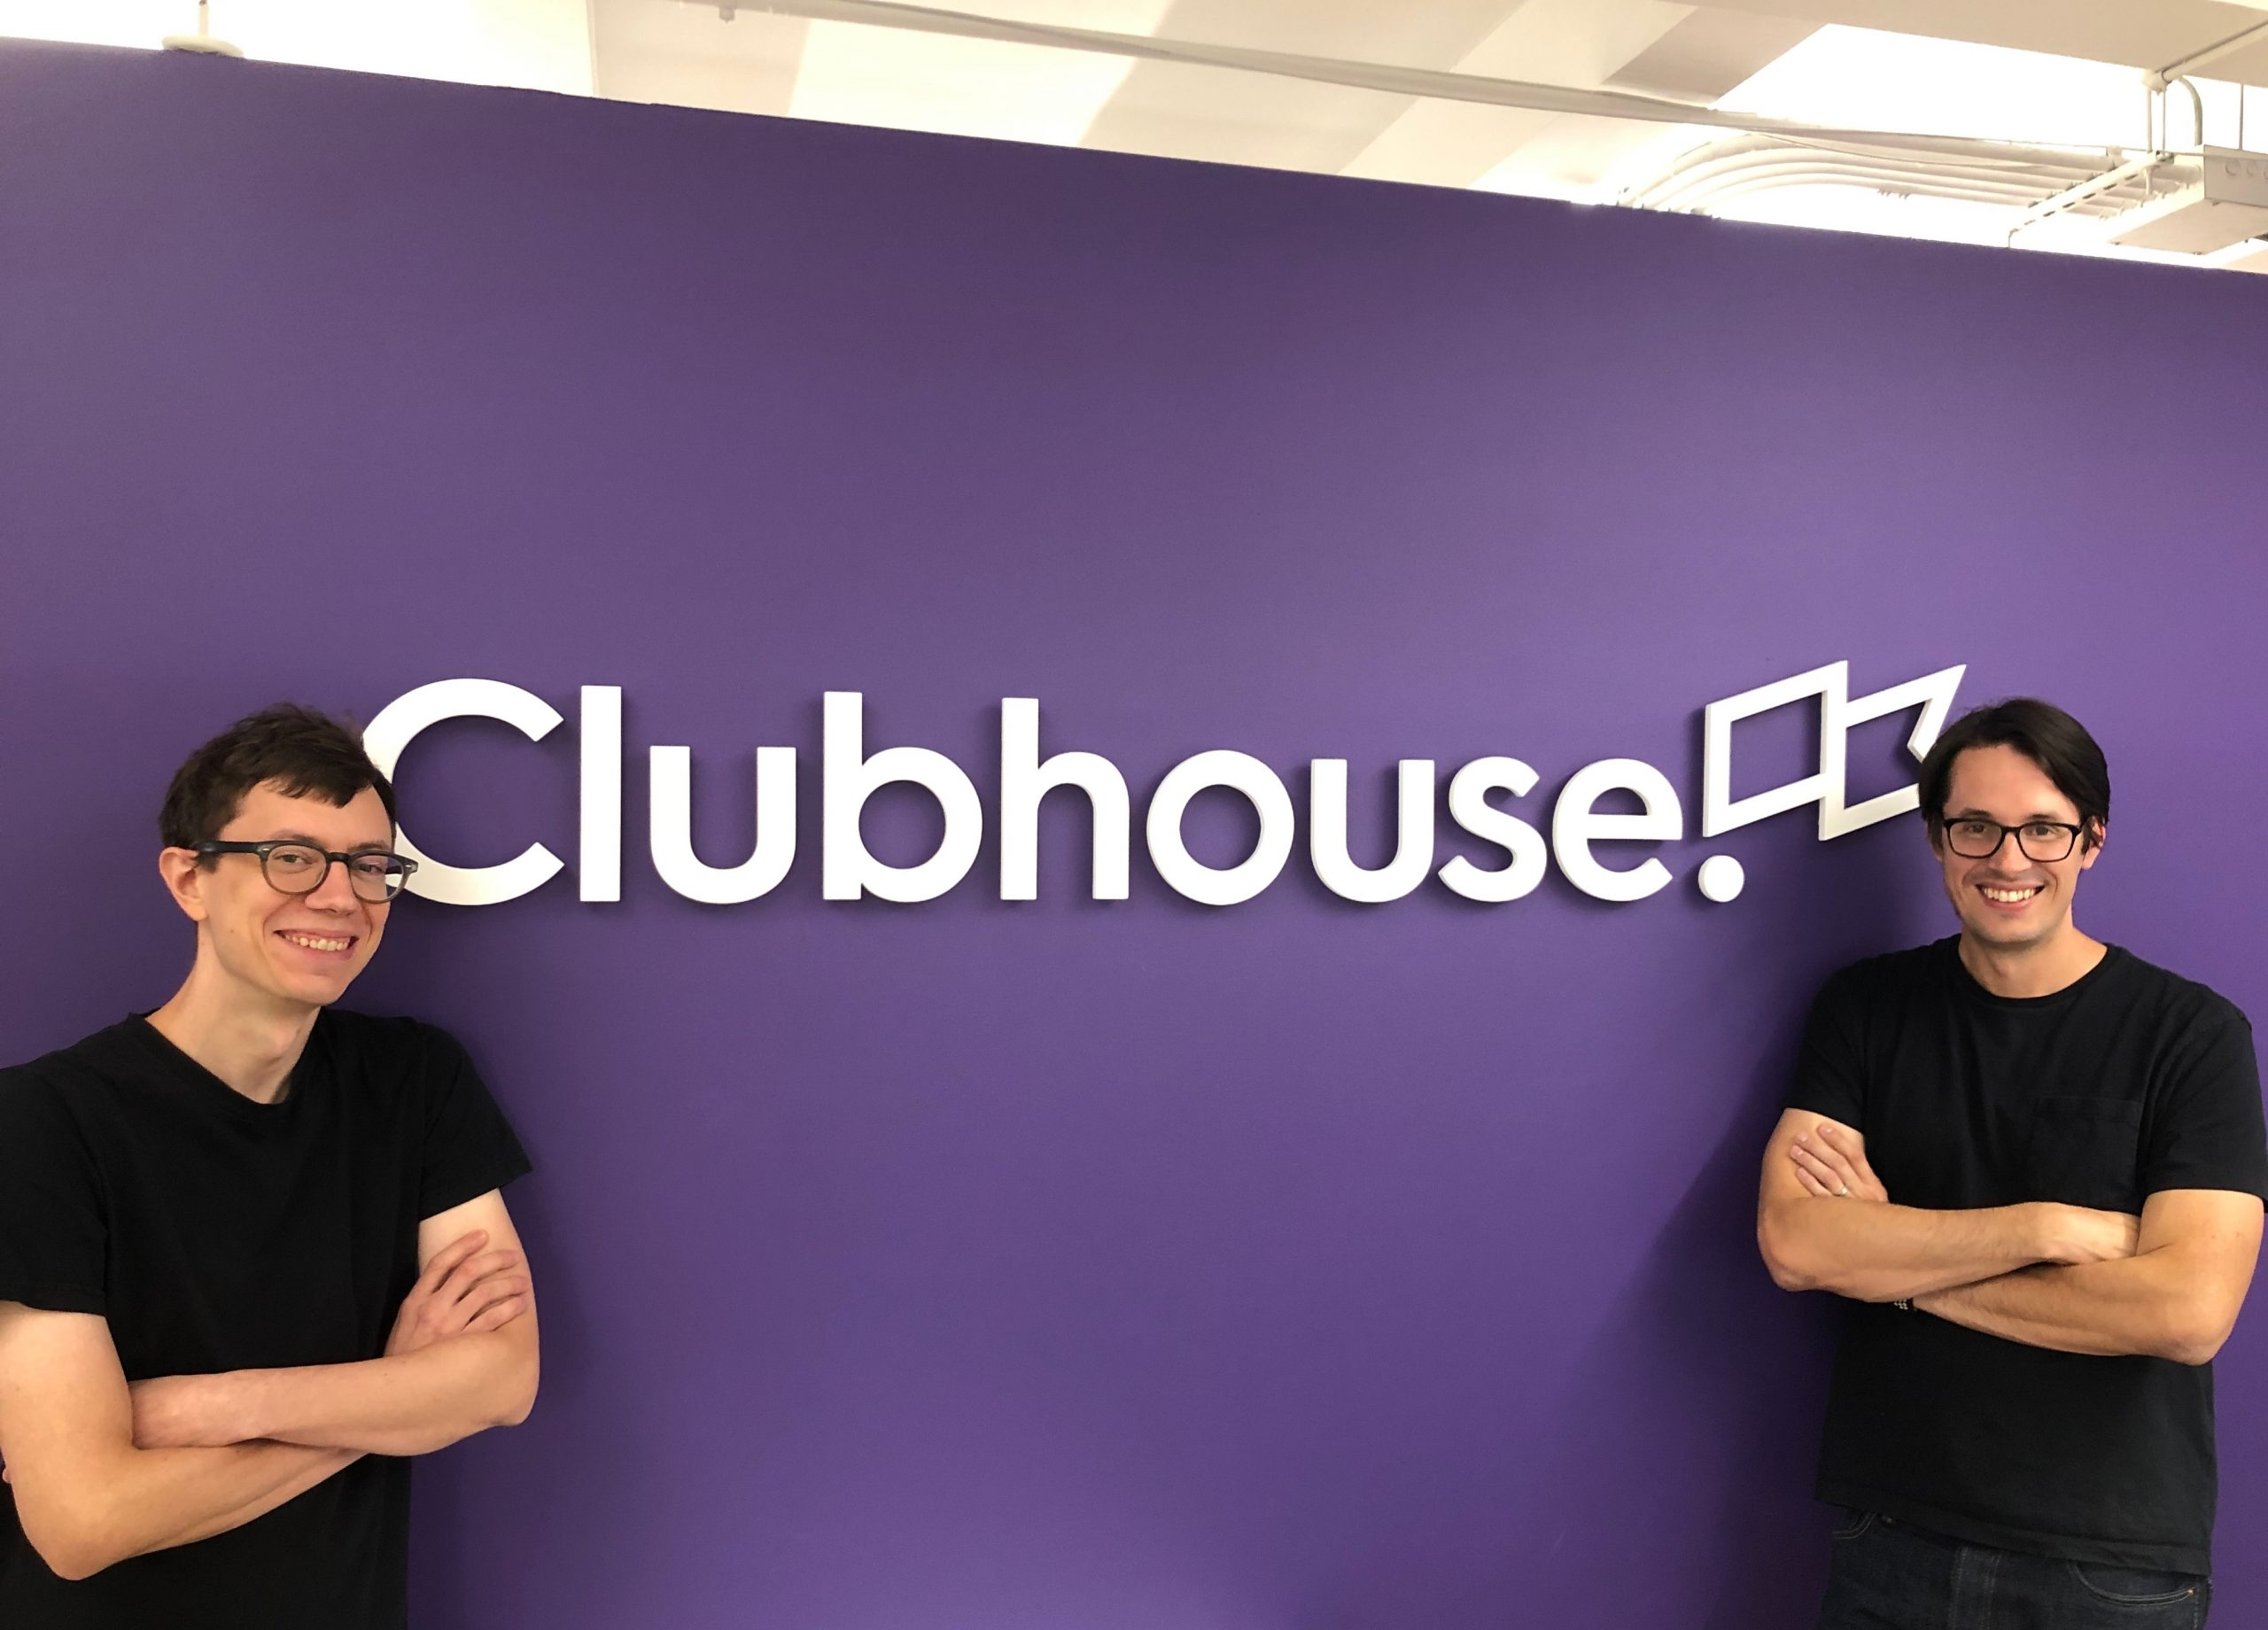 Who is the owner of the clubhouse app